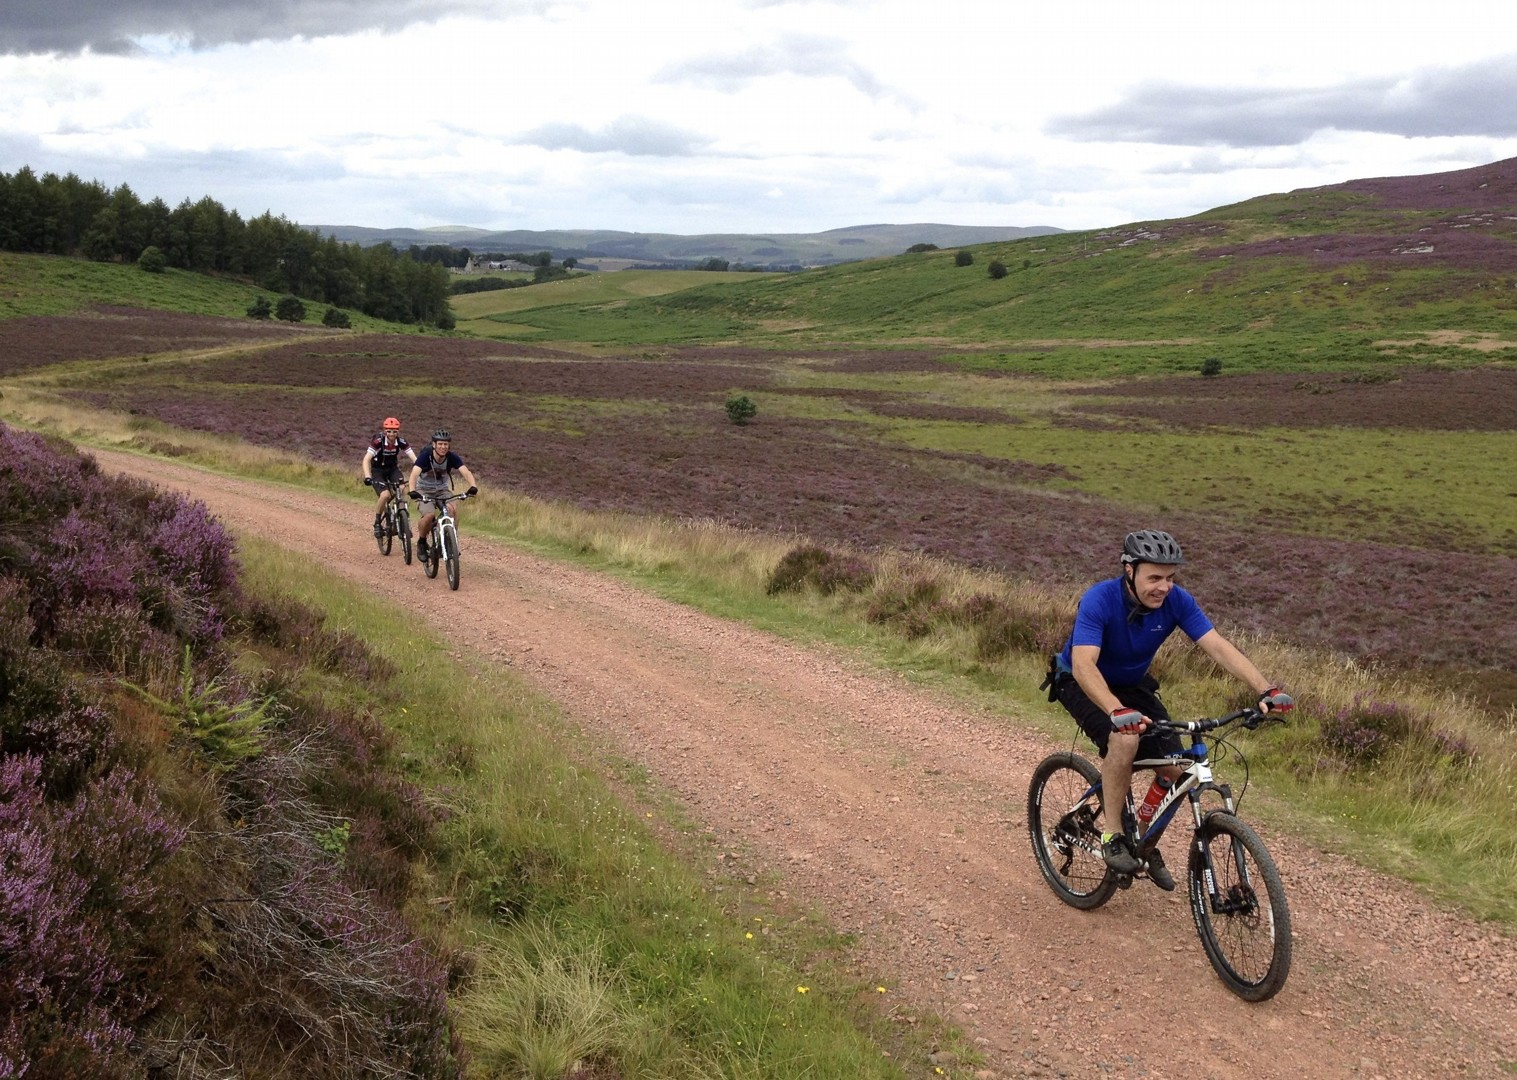 Sandstoneway2.jpg - UK - Northumberland - Sandstone Way - Guided Mountain Bike Weekend - Mountain Biking